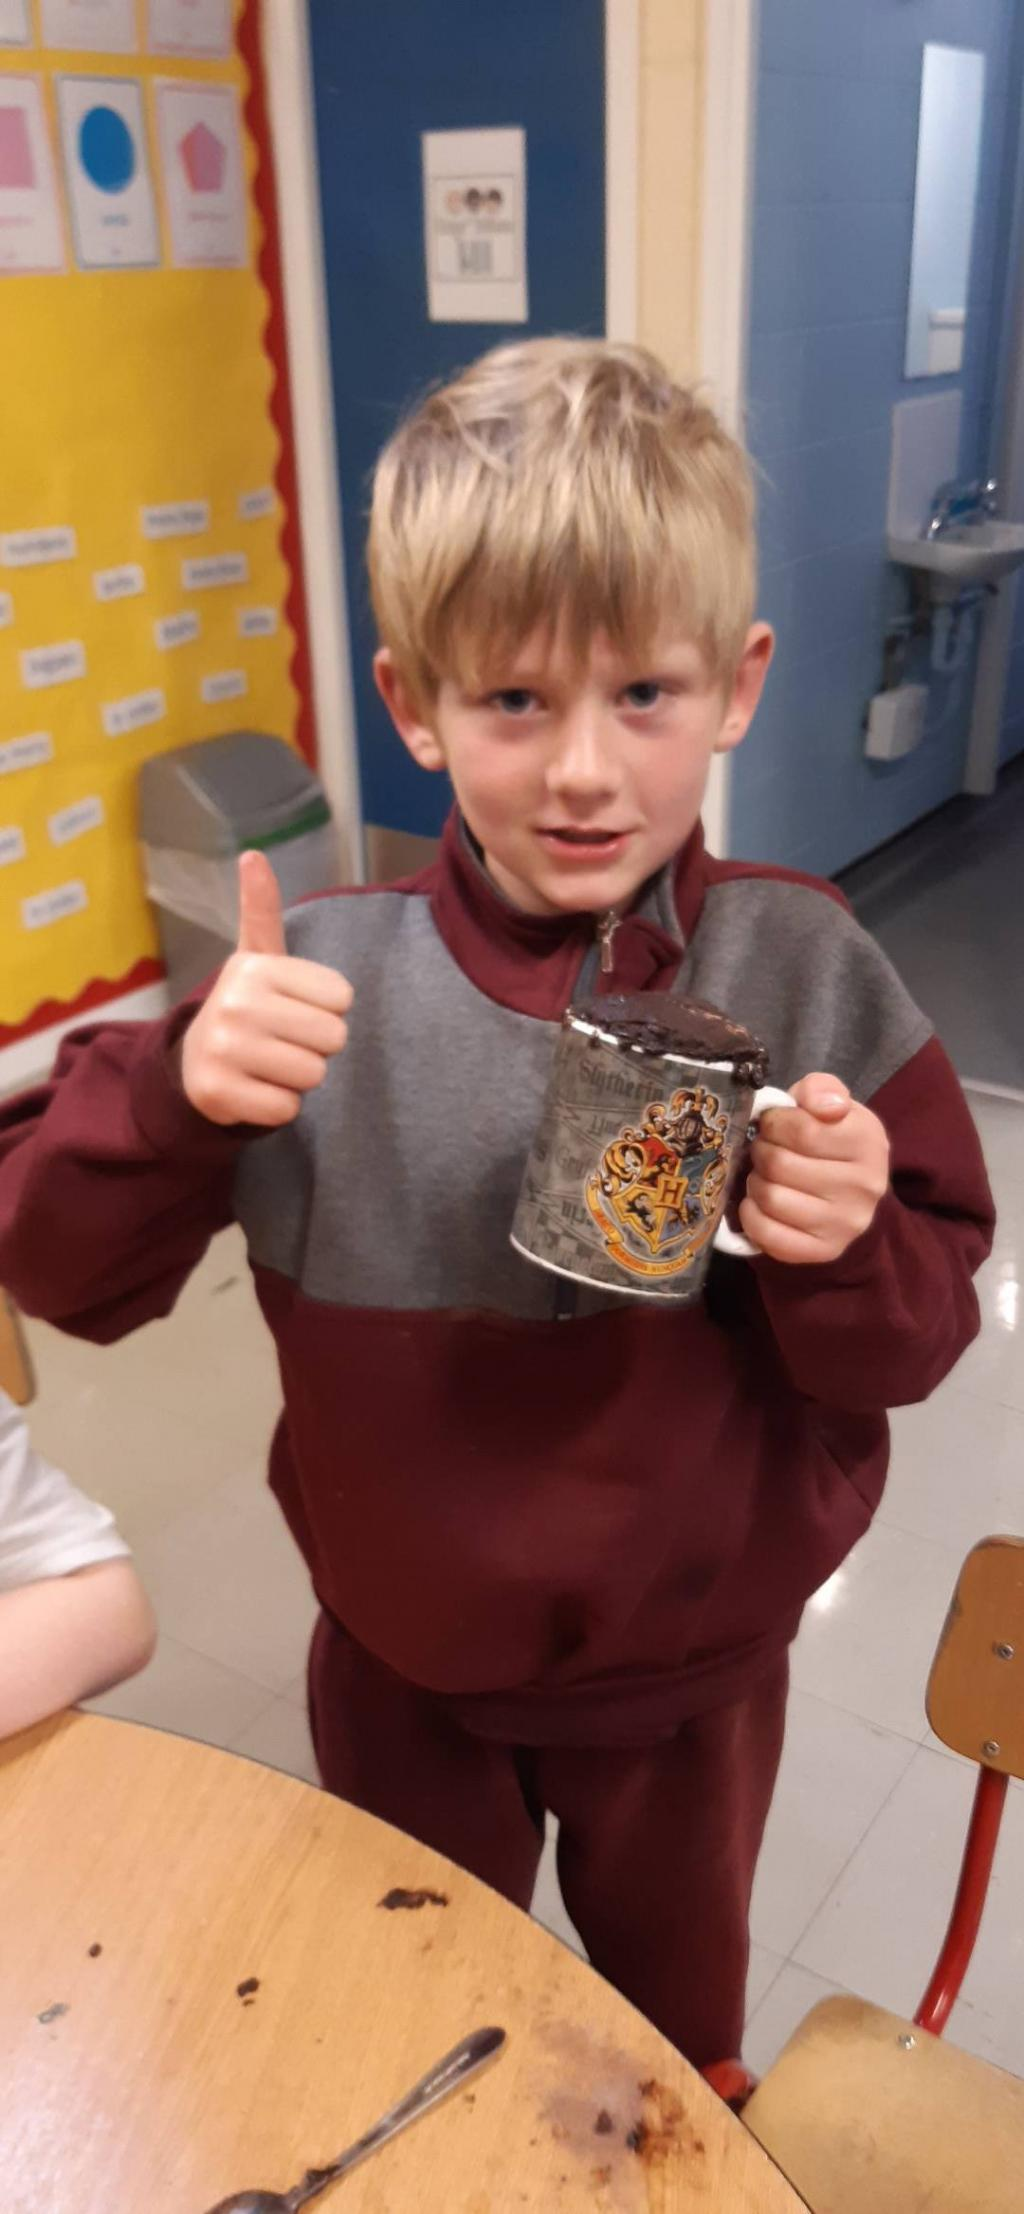 Cake in a Mug Science experiment in Room 5!